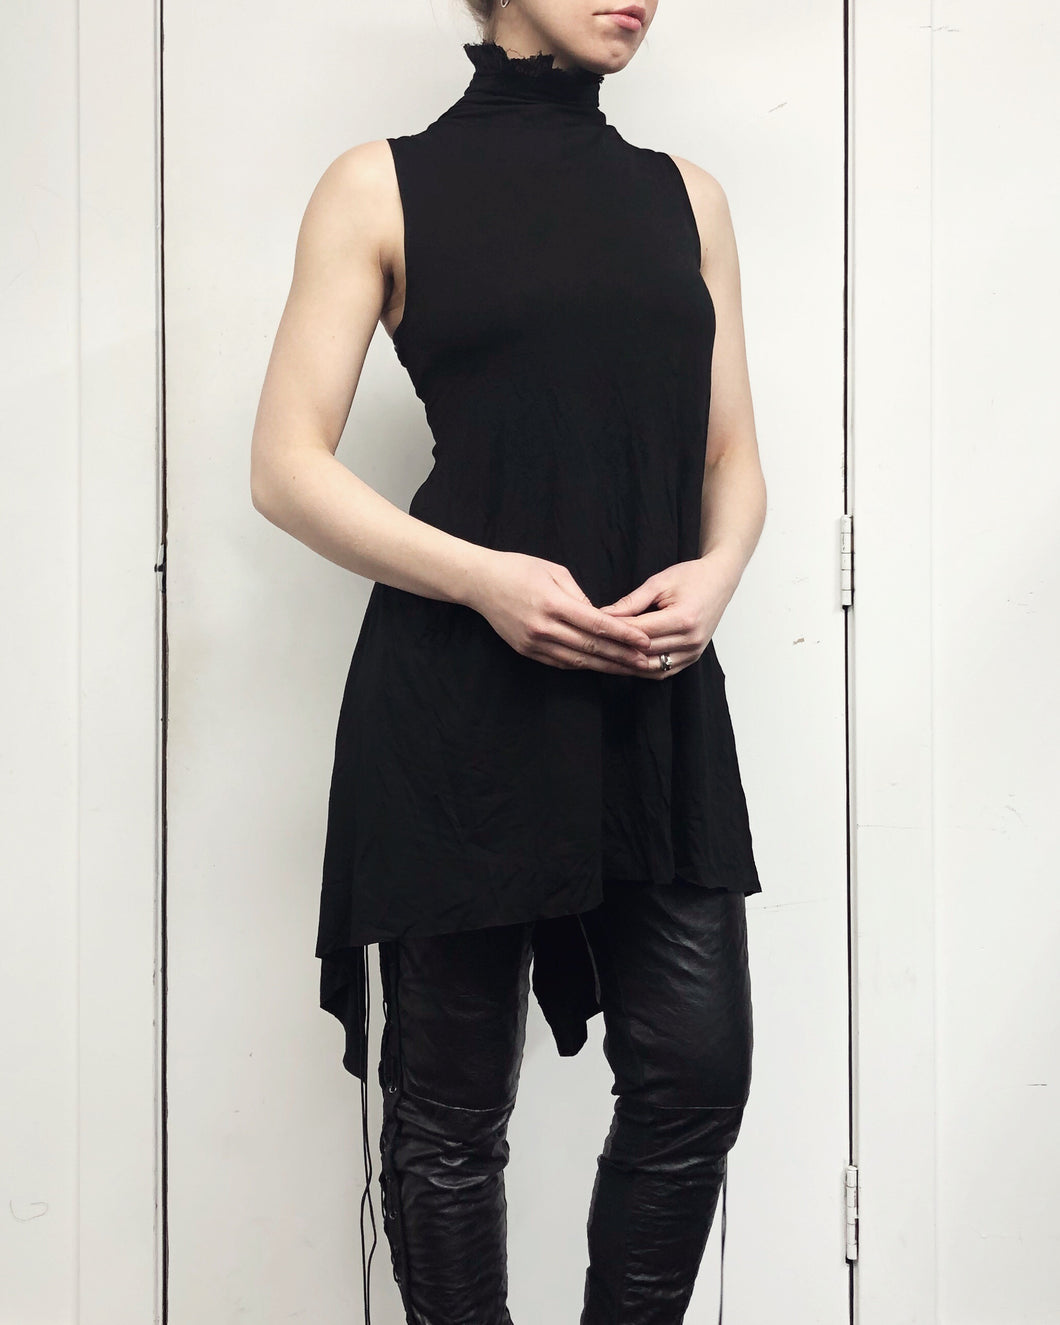 Sample Sale: Tails Tank w/Linen Ruff Collar, S/M